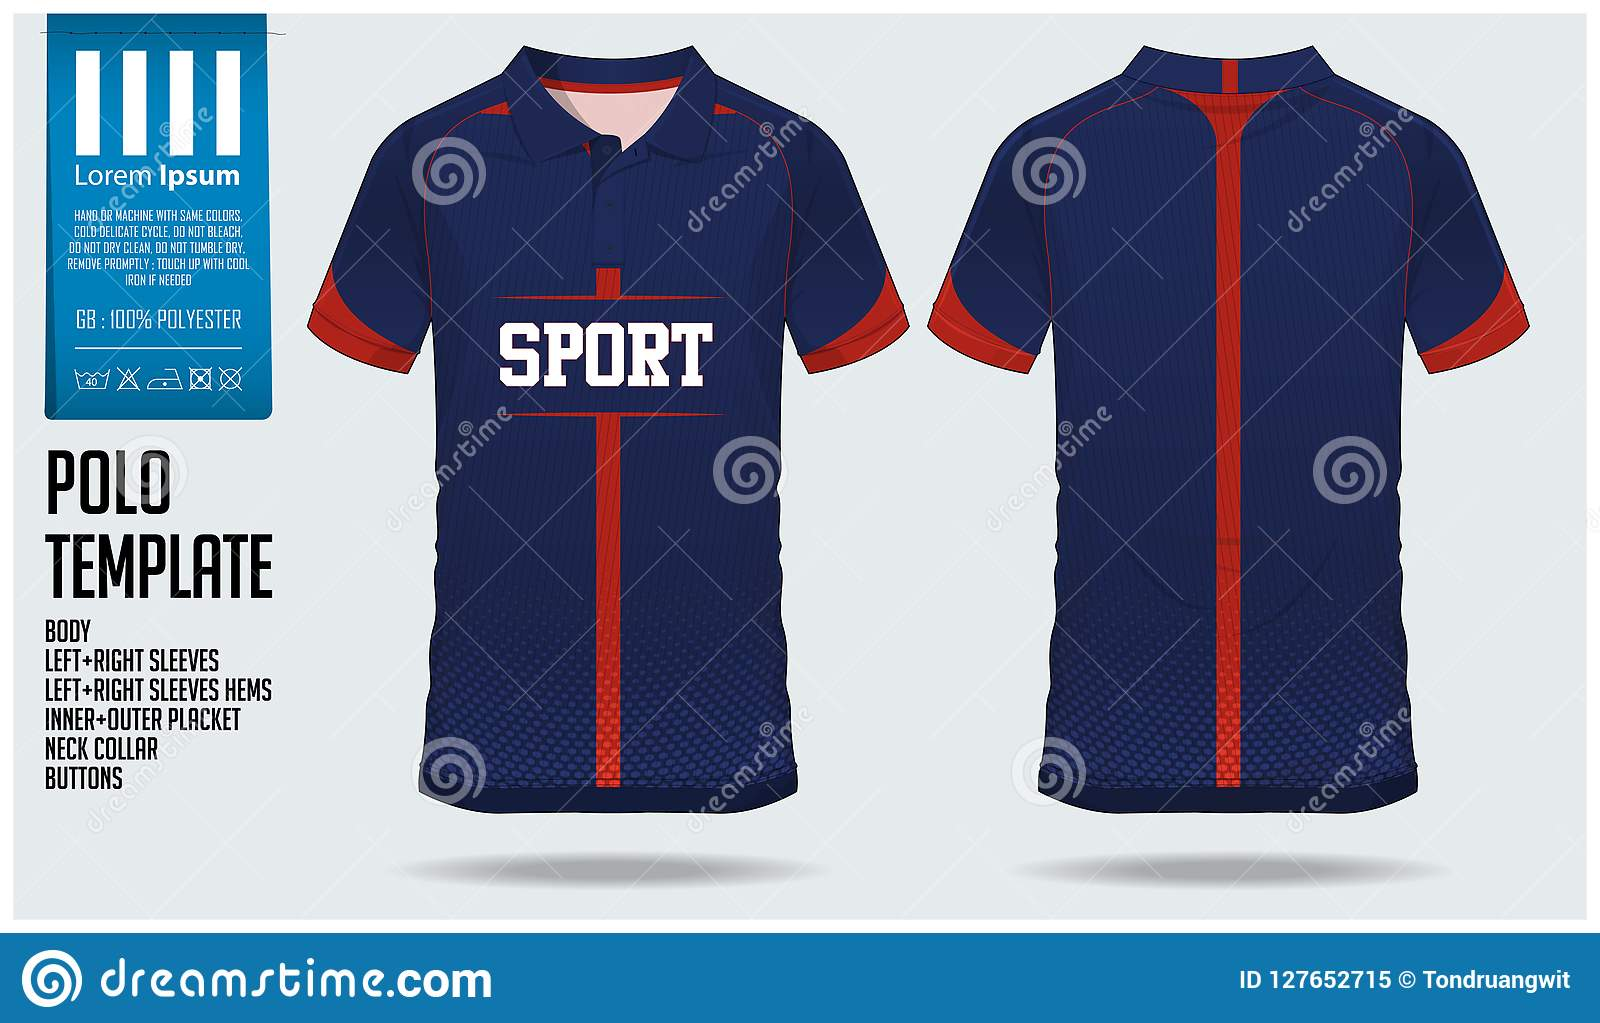 5539d9a6 Polo t shirt sport design template for soccer jersey, football kit or sport  club.